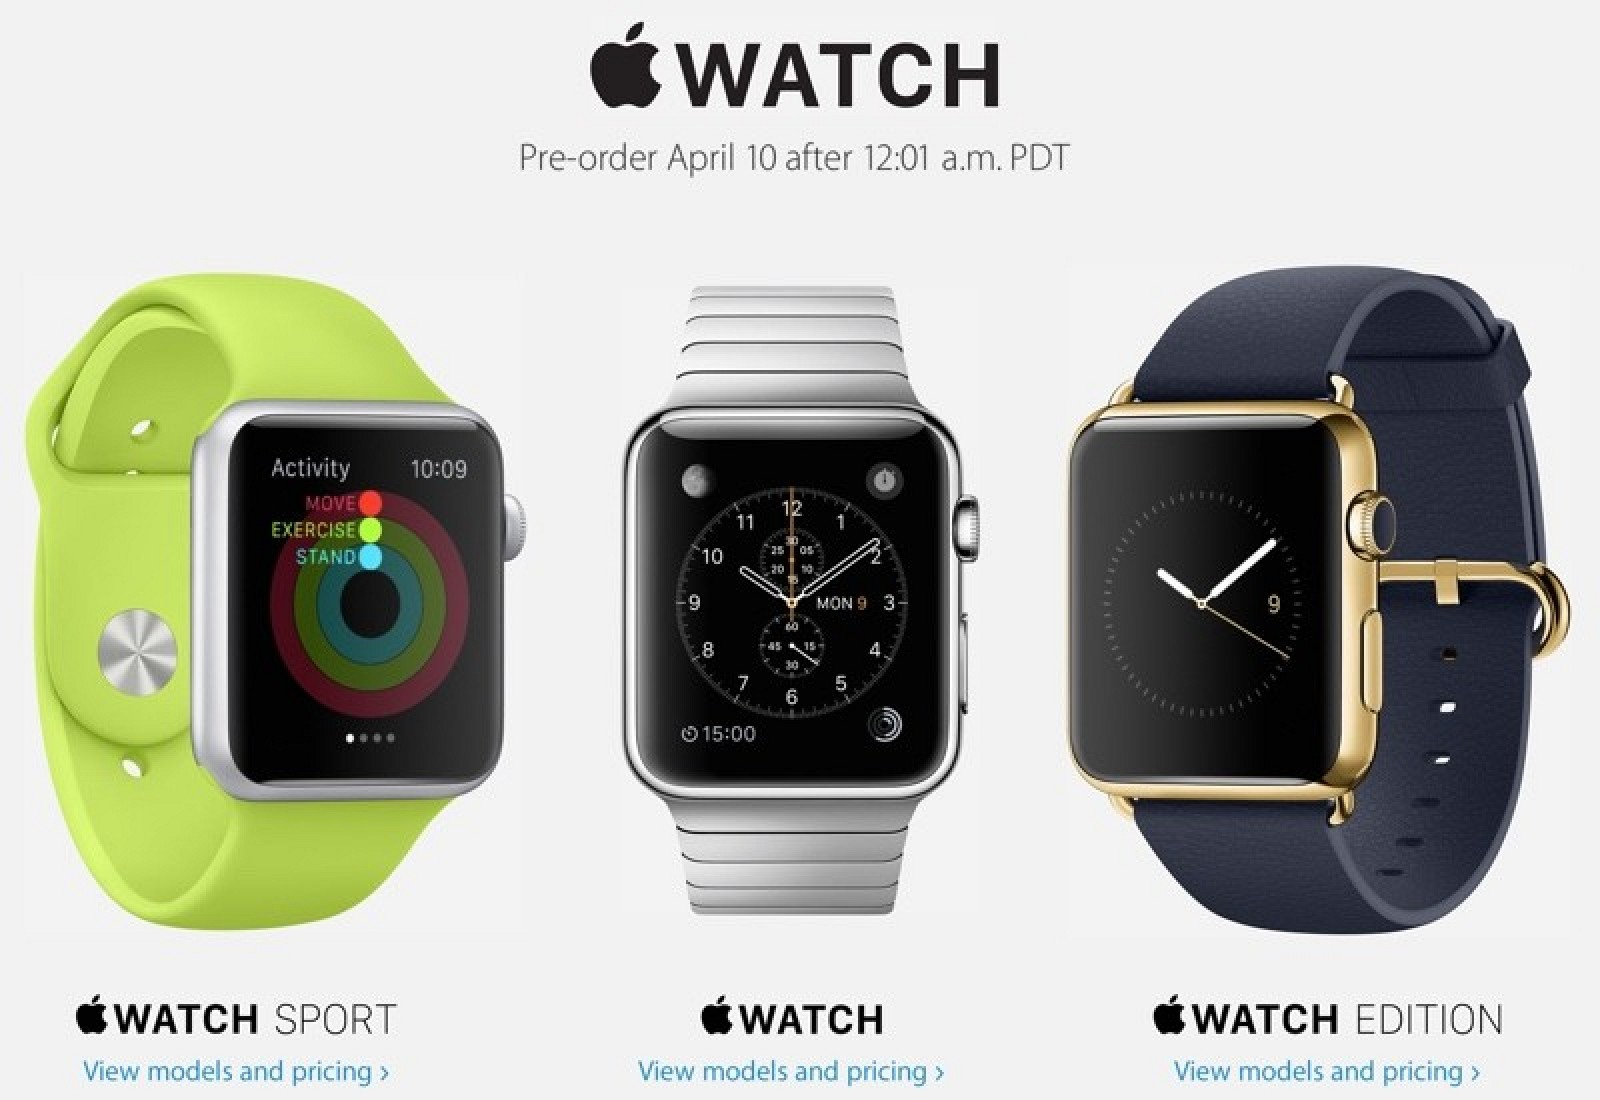 Black Friday Car Deals >> Apple Announces Apple Watch Pre-Orders Will Kick Off at 12:01 AM PT on April 10 - Mac Rumors